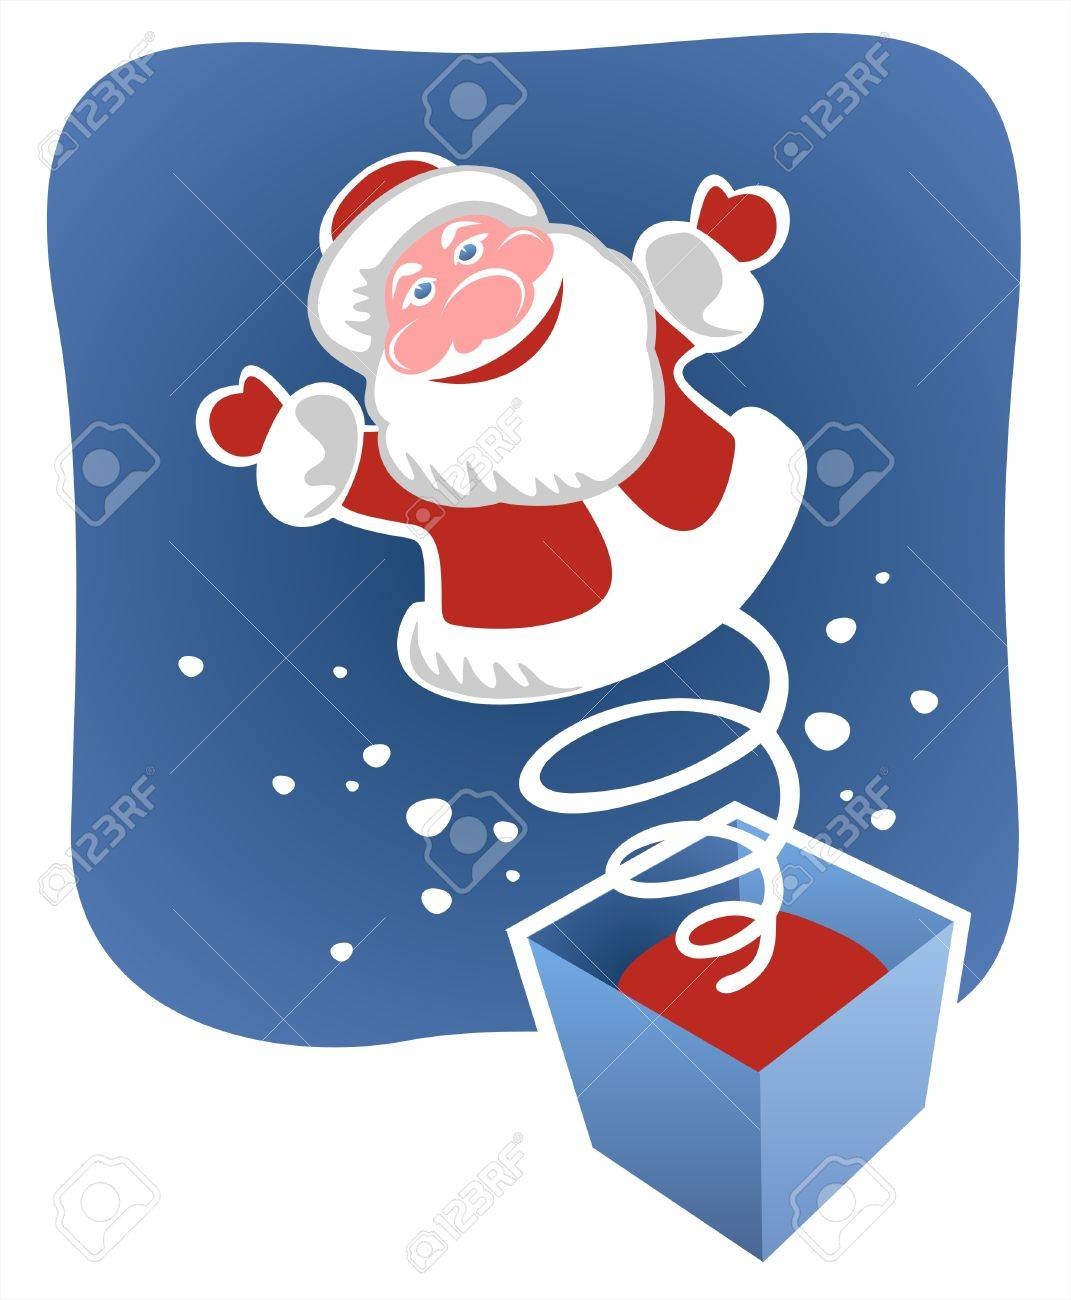 A toy santa jumps out on a spring from a box. Christmas illustration. Stock Vector - 2137576